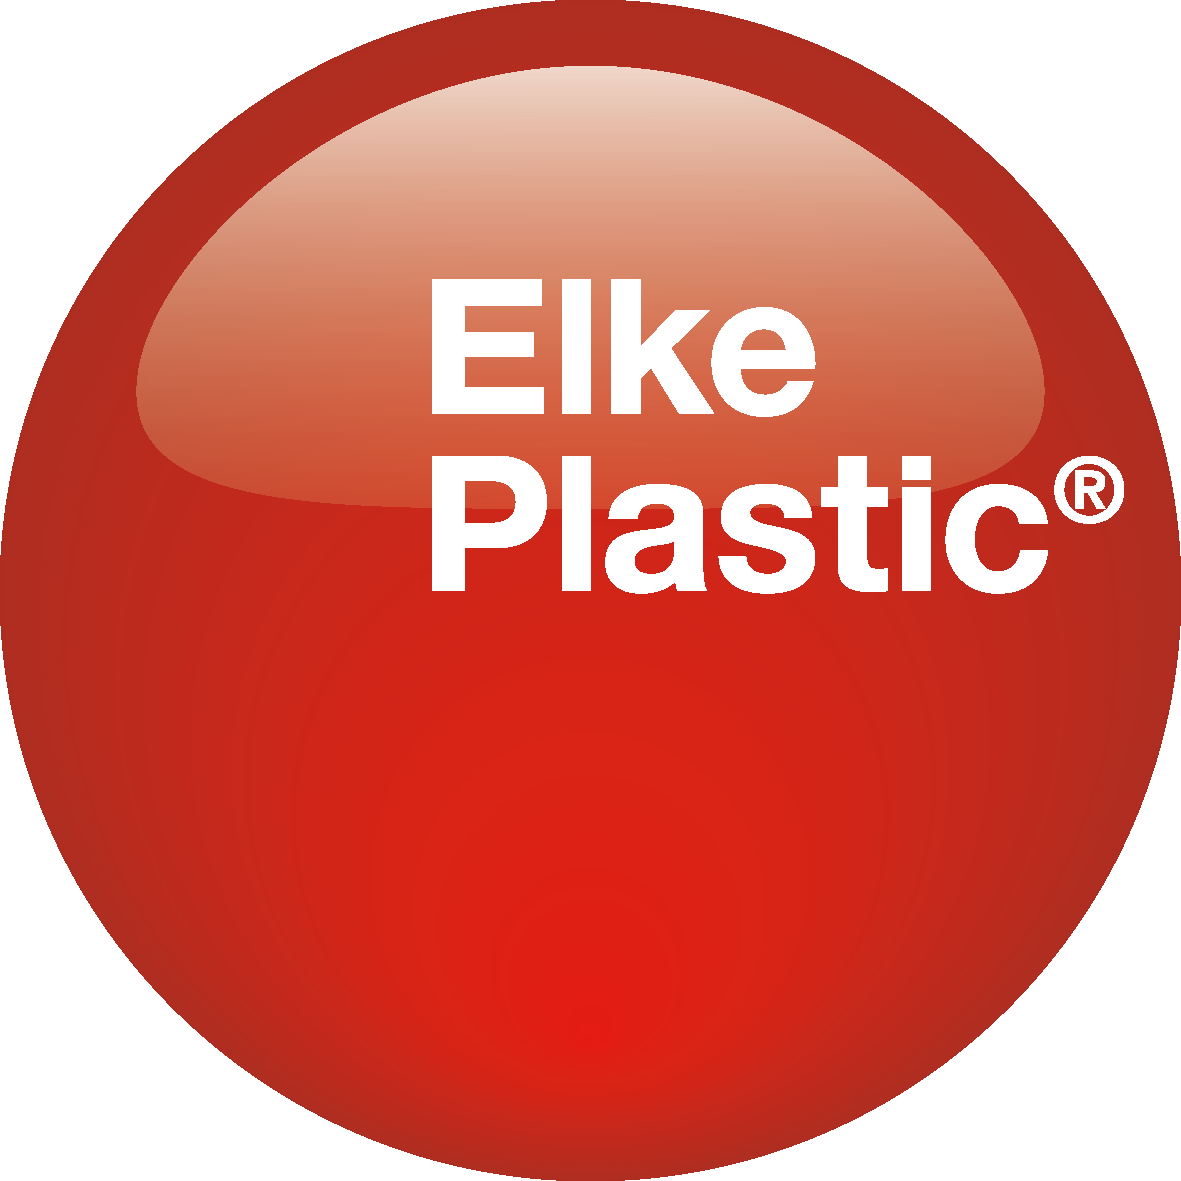 Elke Plastic - Your Packaging Professional